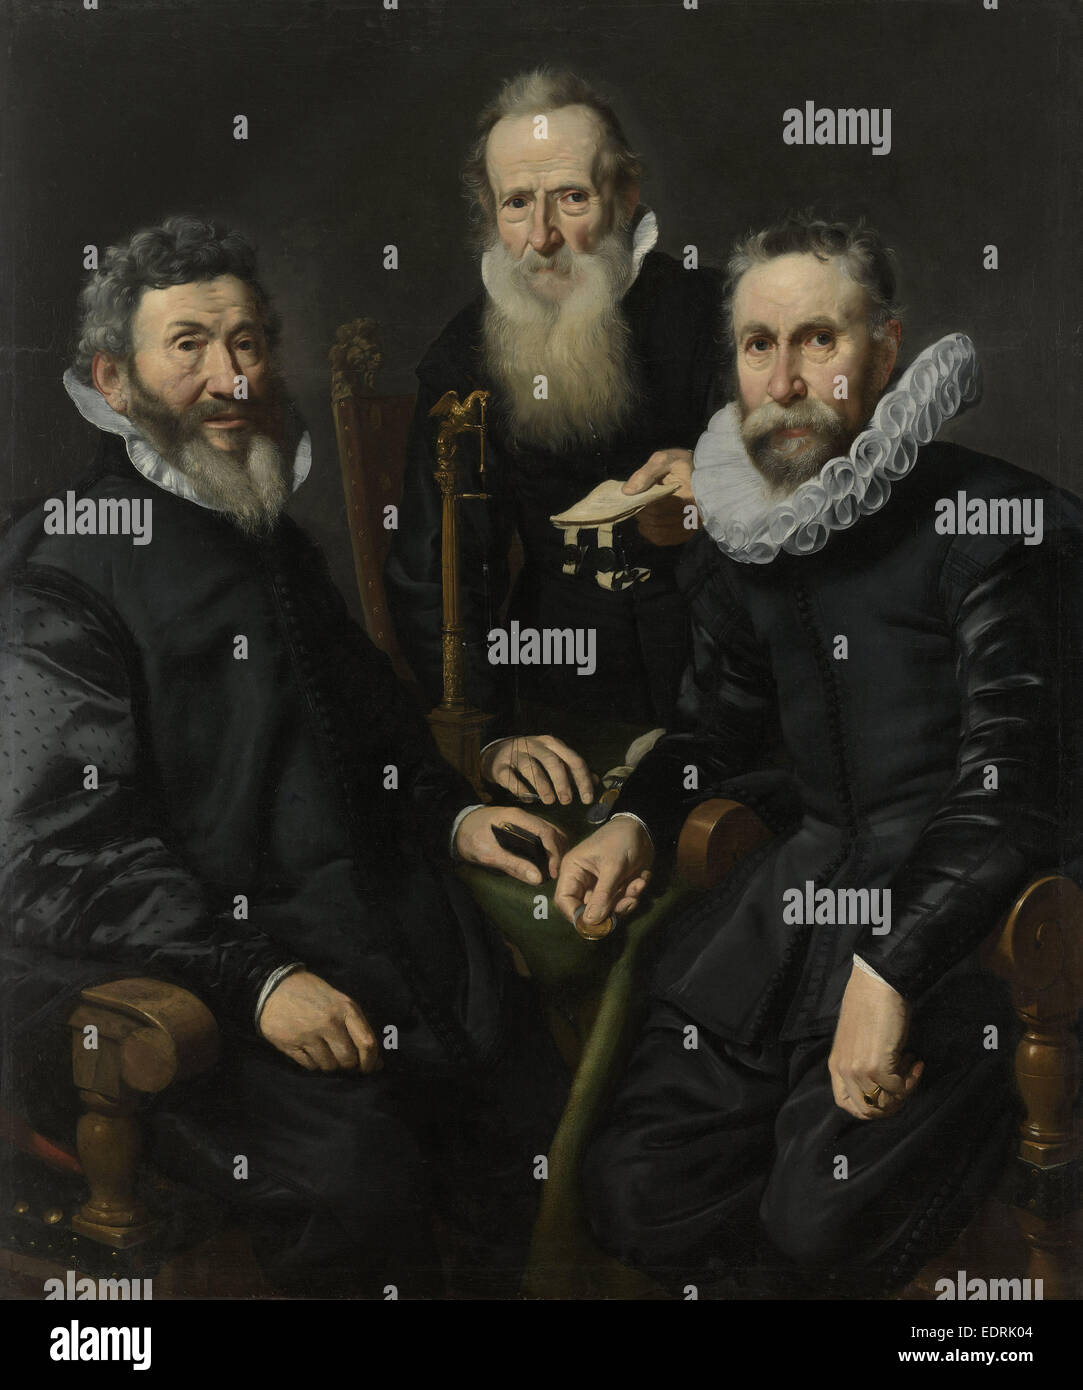 Group Portrait of an Unidentified Board of Governors, Thomas de Keyser, c. 1625 - c. 1630 - Stock Image